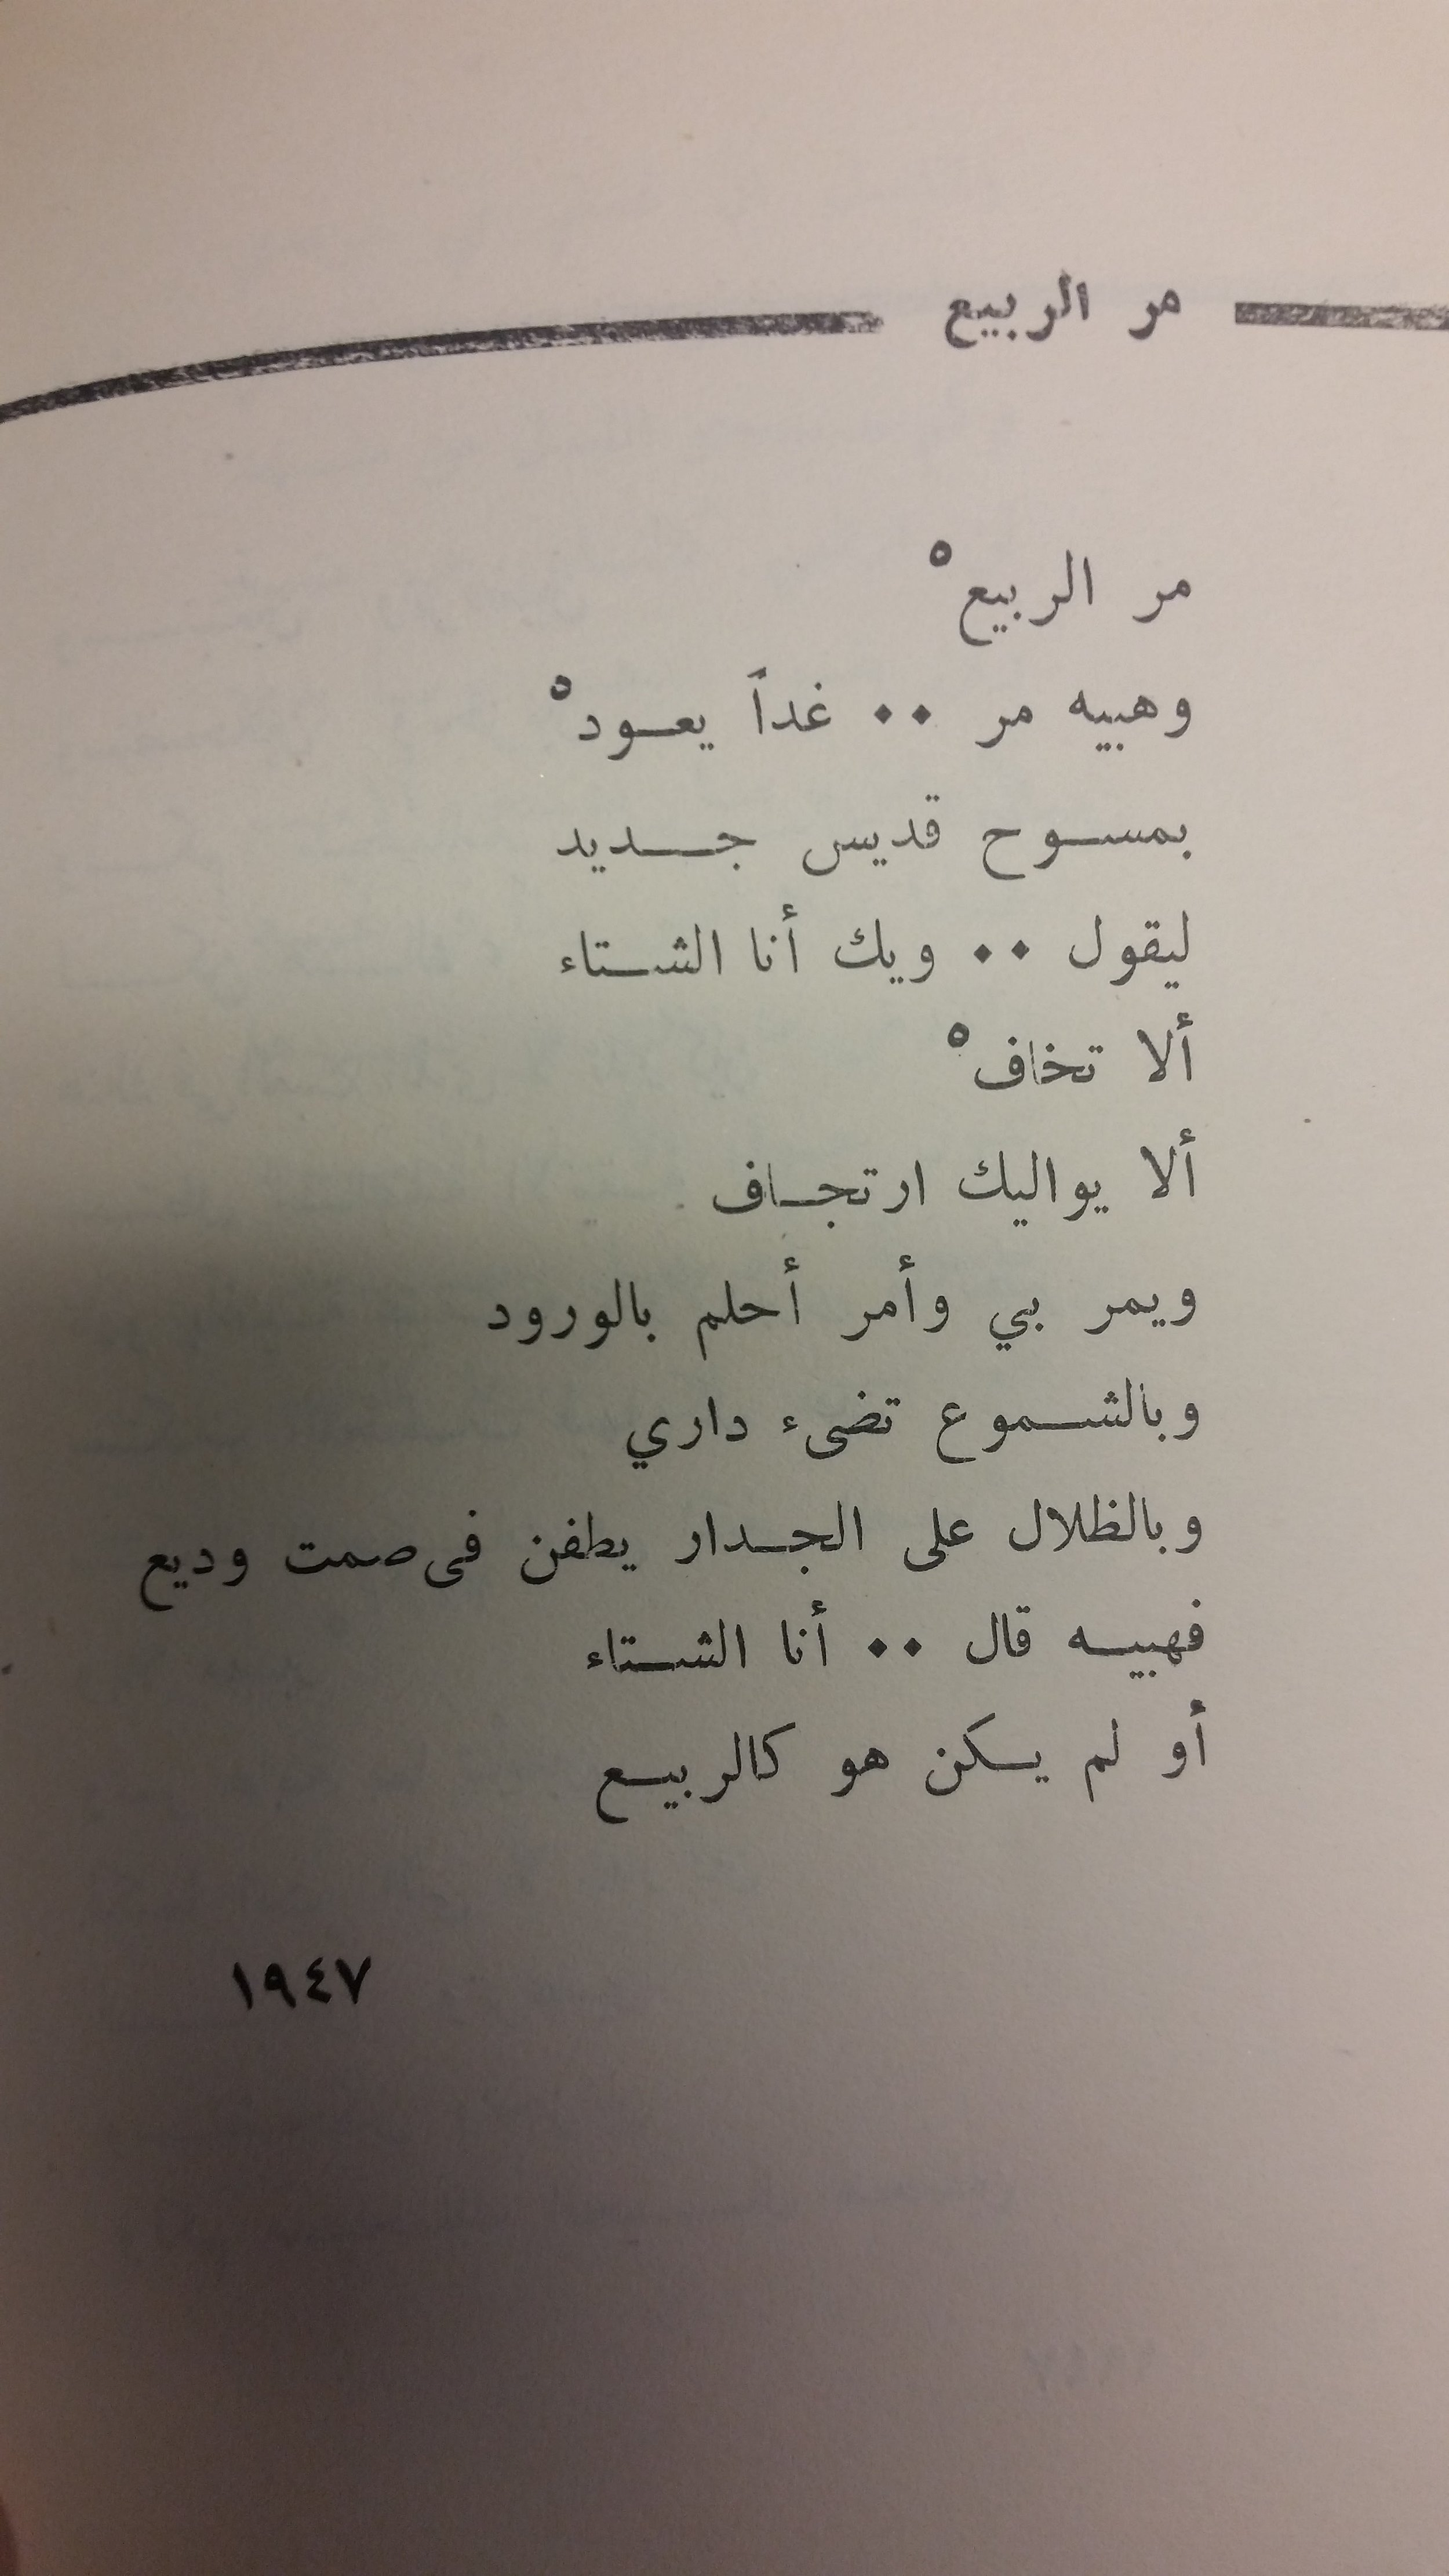 """From  Songs of the Dead City by Buland al-Ḥaydarī. A quick translation:  Spring is gone  Its dust, gone... but tomorrow it will return  wearing a monk's new frock  to say, """"Beware, I am Winter  Are you not afraid?  Are you not by trembling swayed?  It passes by me, and I pass by, dreaming of roses,  of my house bathed in candlelight  as shadows roam the wall in tranquil silence.  Its dust said, """"I am Winter...""""  And was it not like Spring?"""